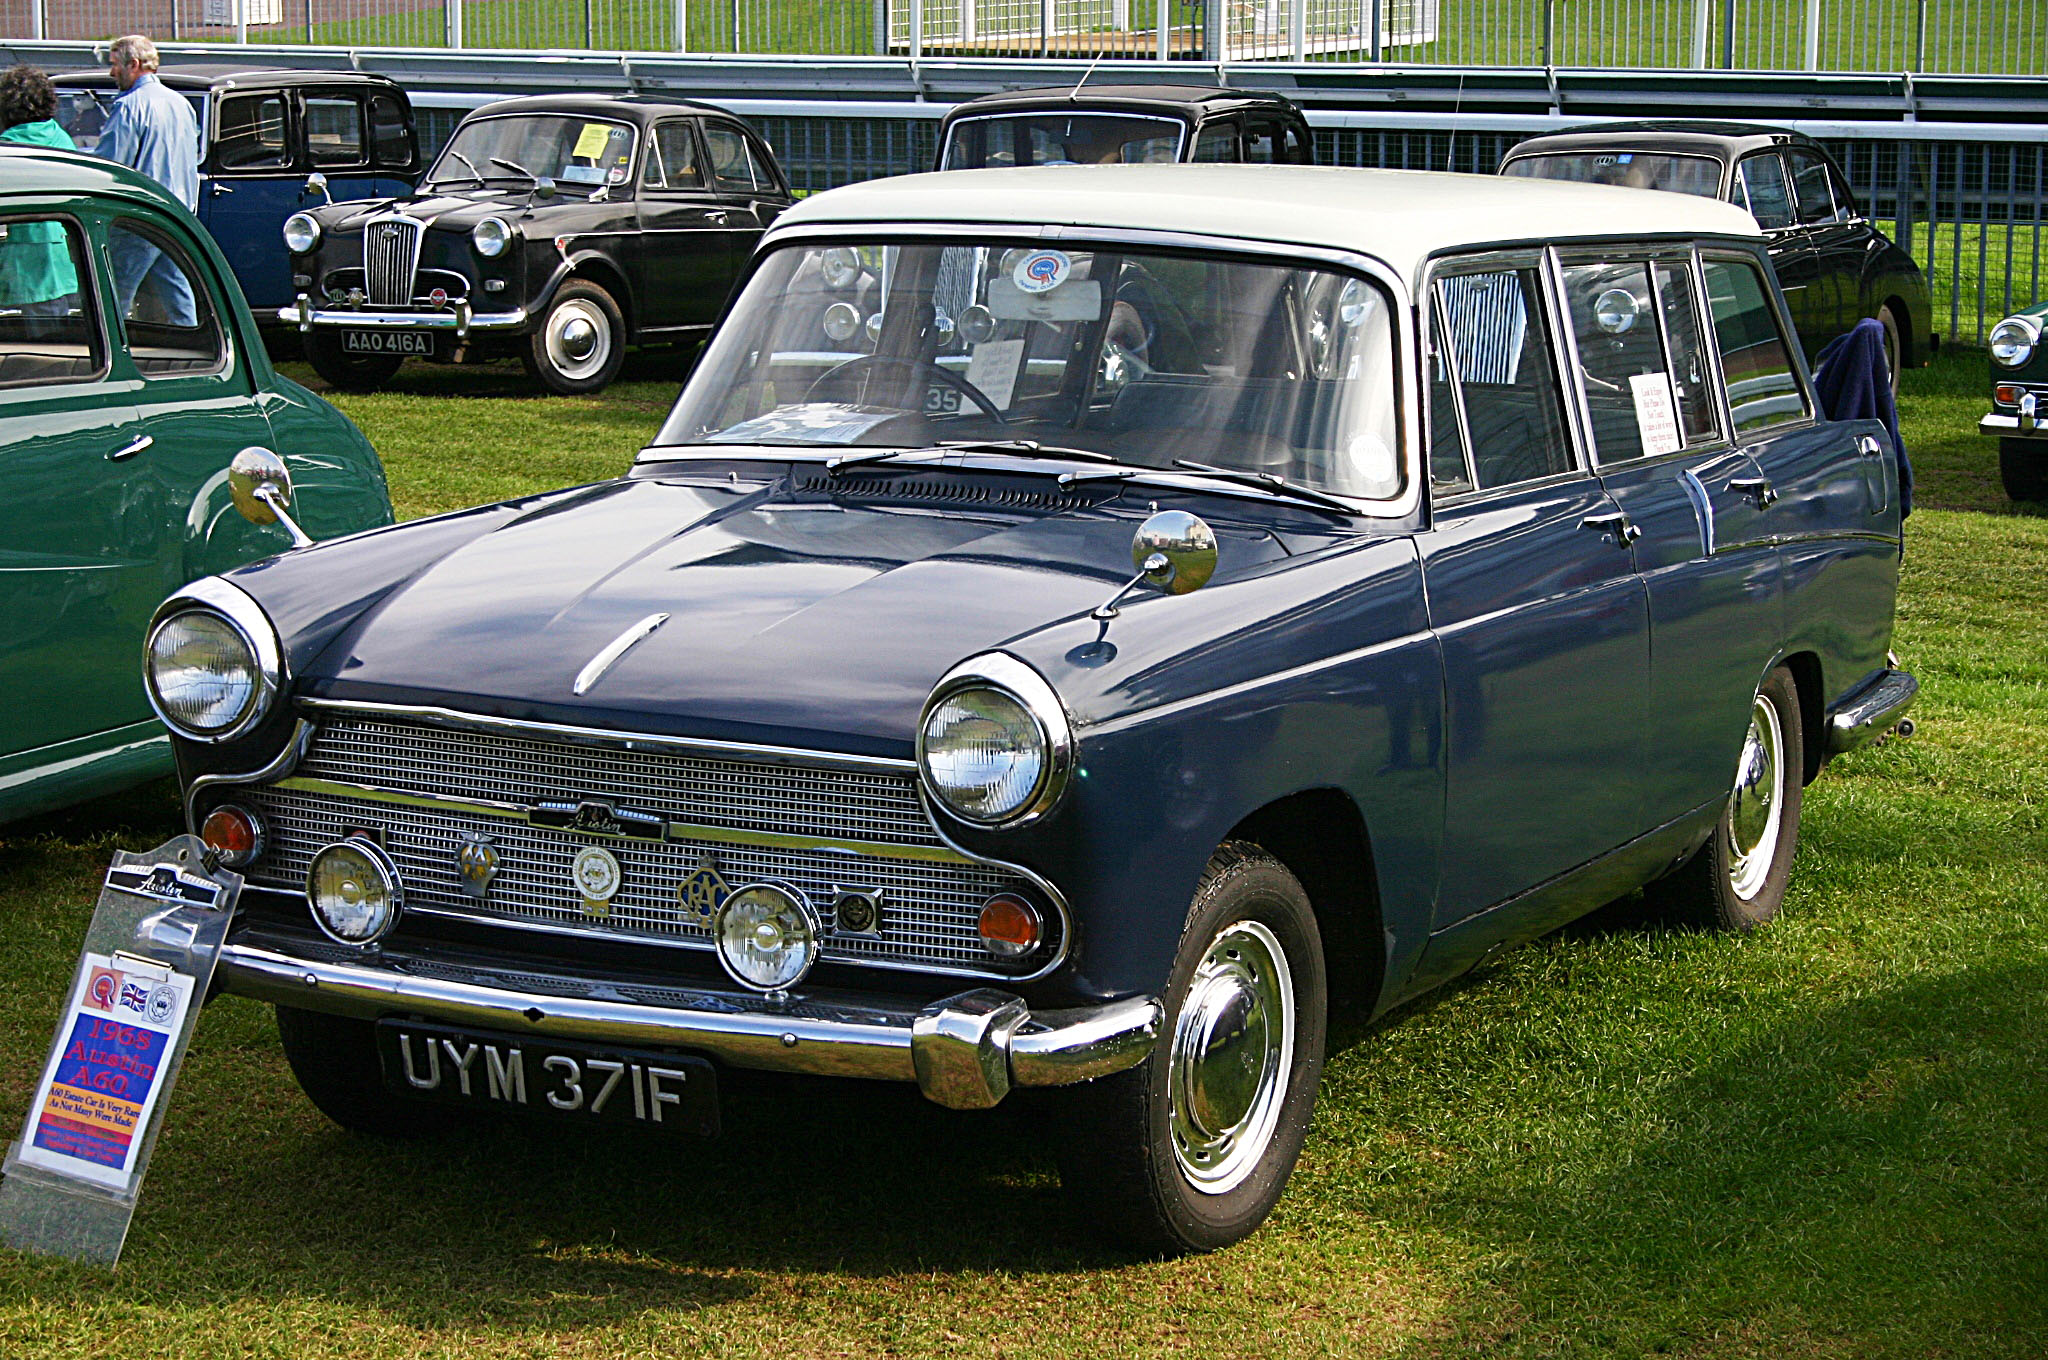 File:Austin A60 Cambridge Countryman 1966.jpg - Wikipedia, the ...